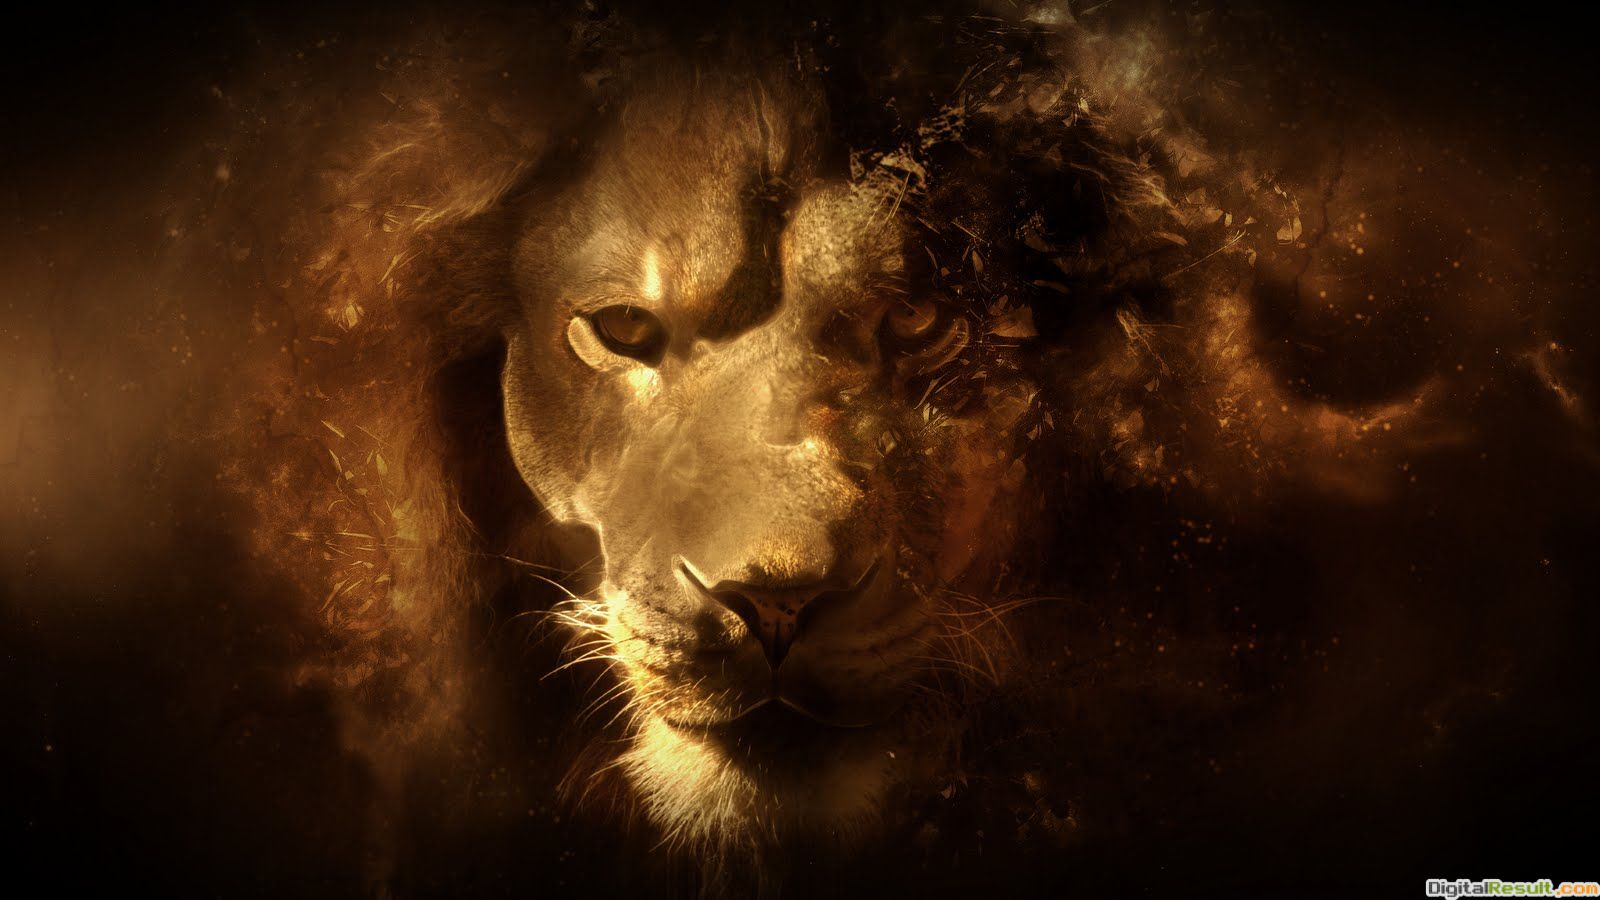 abstract lion hd wallpapers hd animal wallpaper lion abstract lion hd